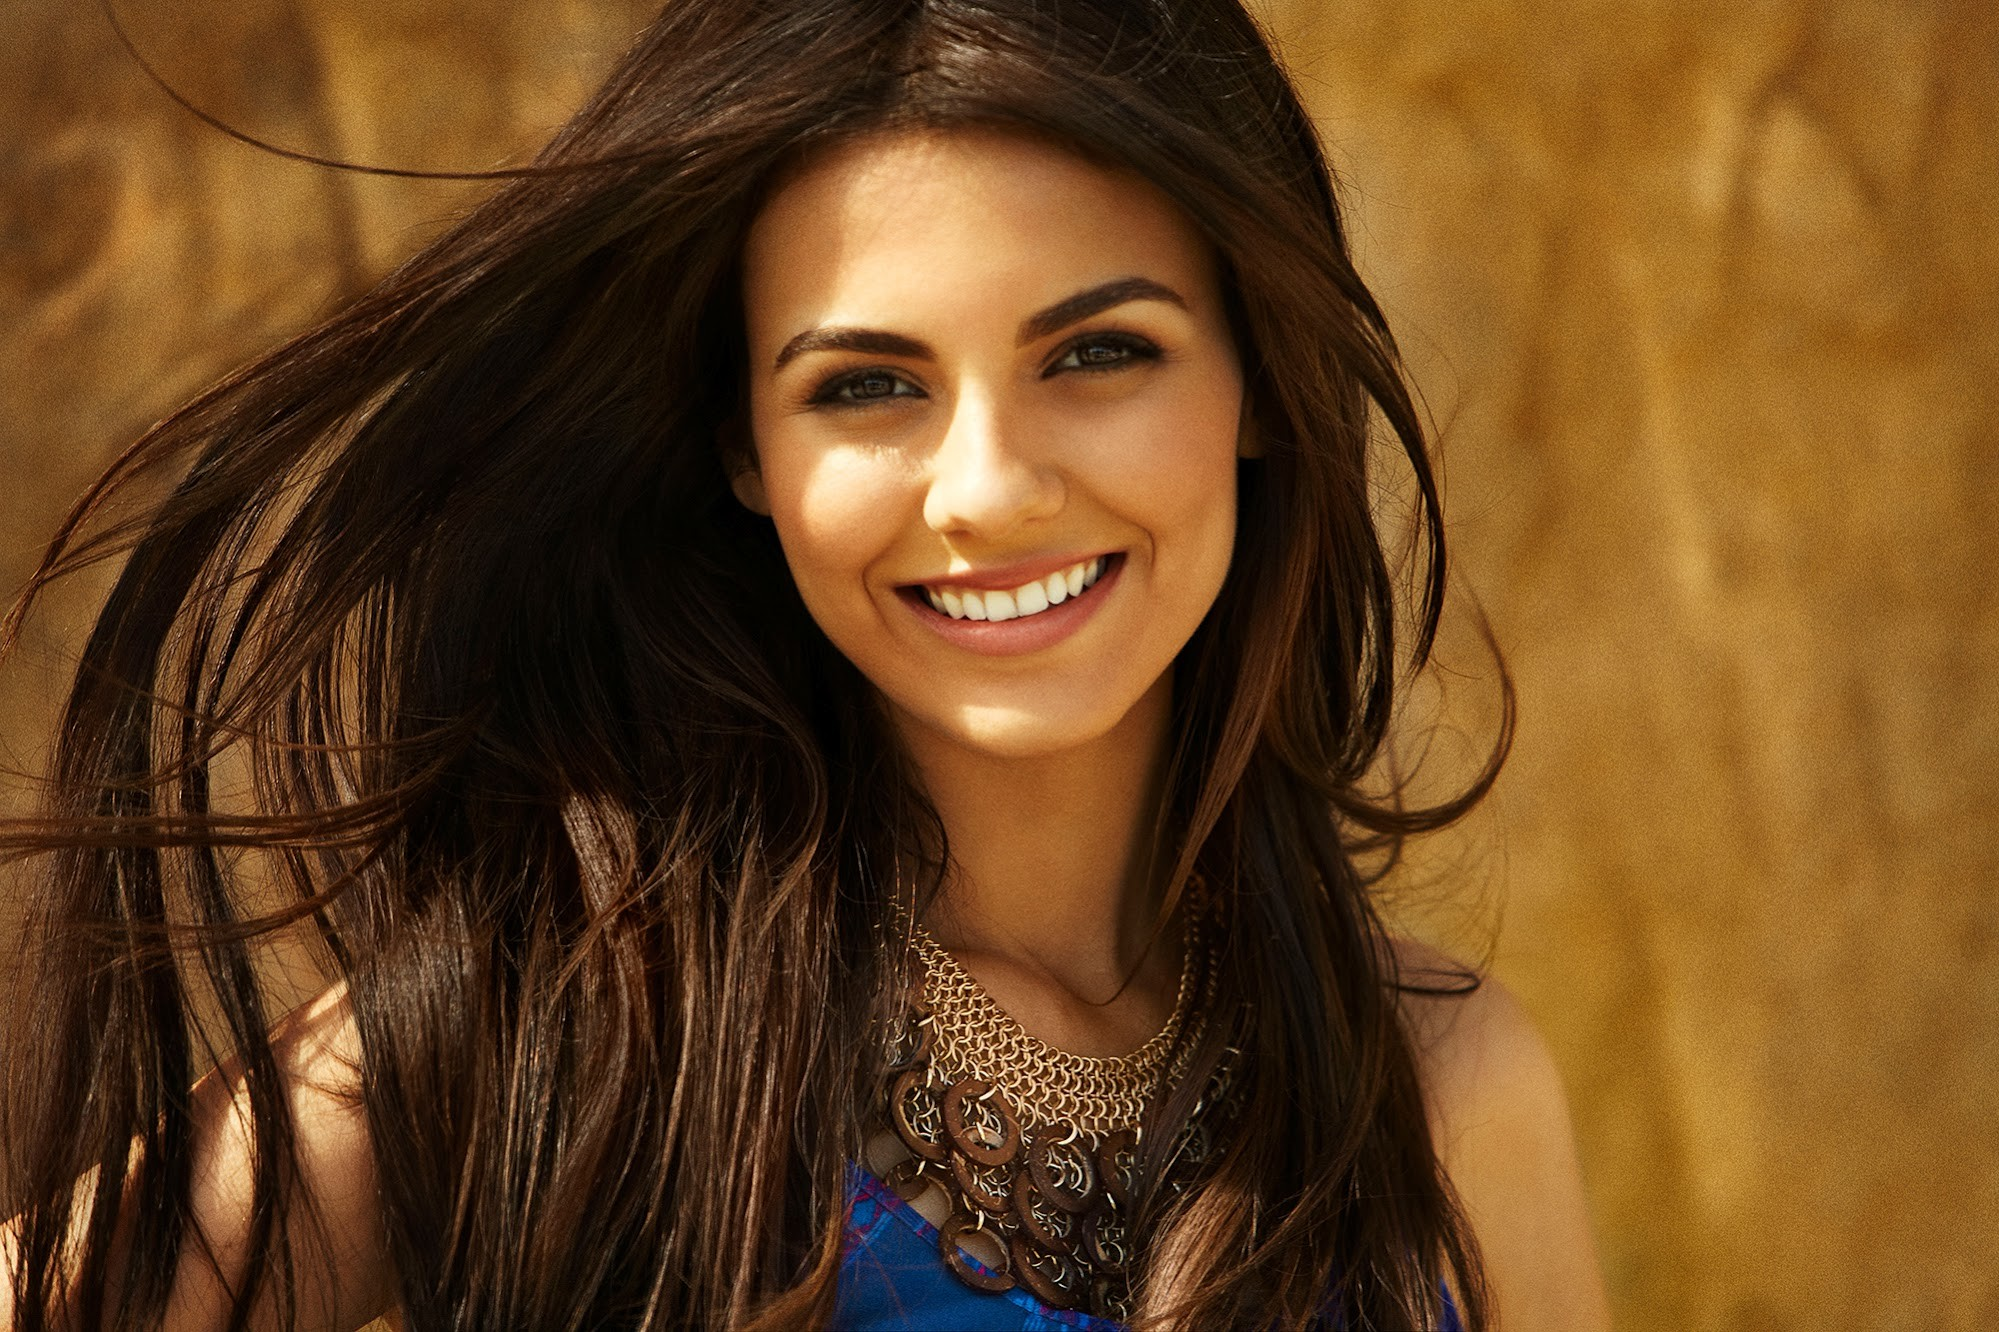 1999x1332 Image - Victoria-Justice-Beautiful-Smile-Full-Wallpaper-HD.jpg | BaileyGo22  Wiki | FANDOM powered by Wikia